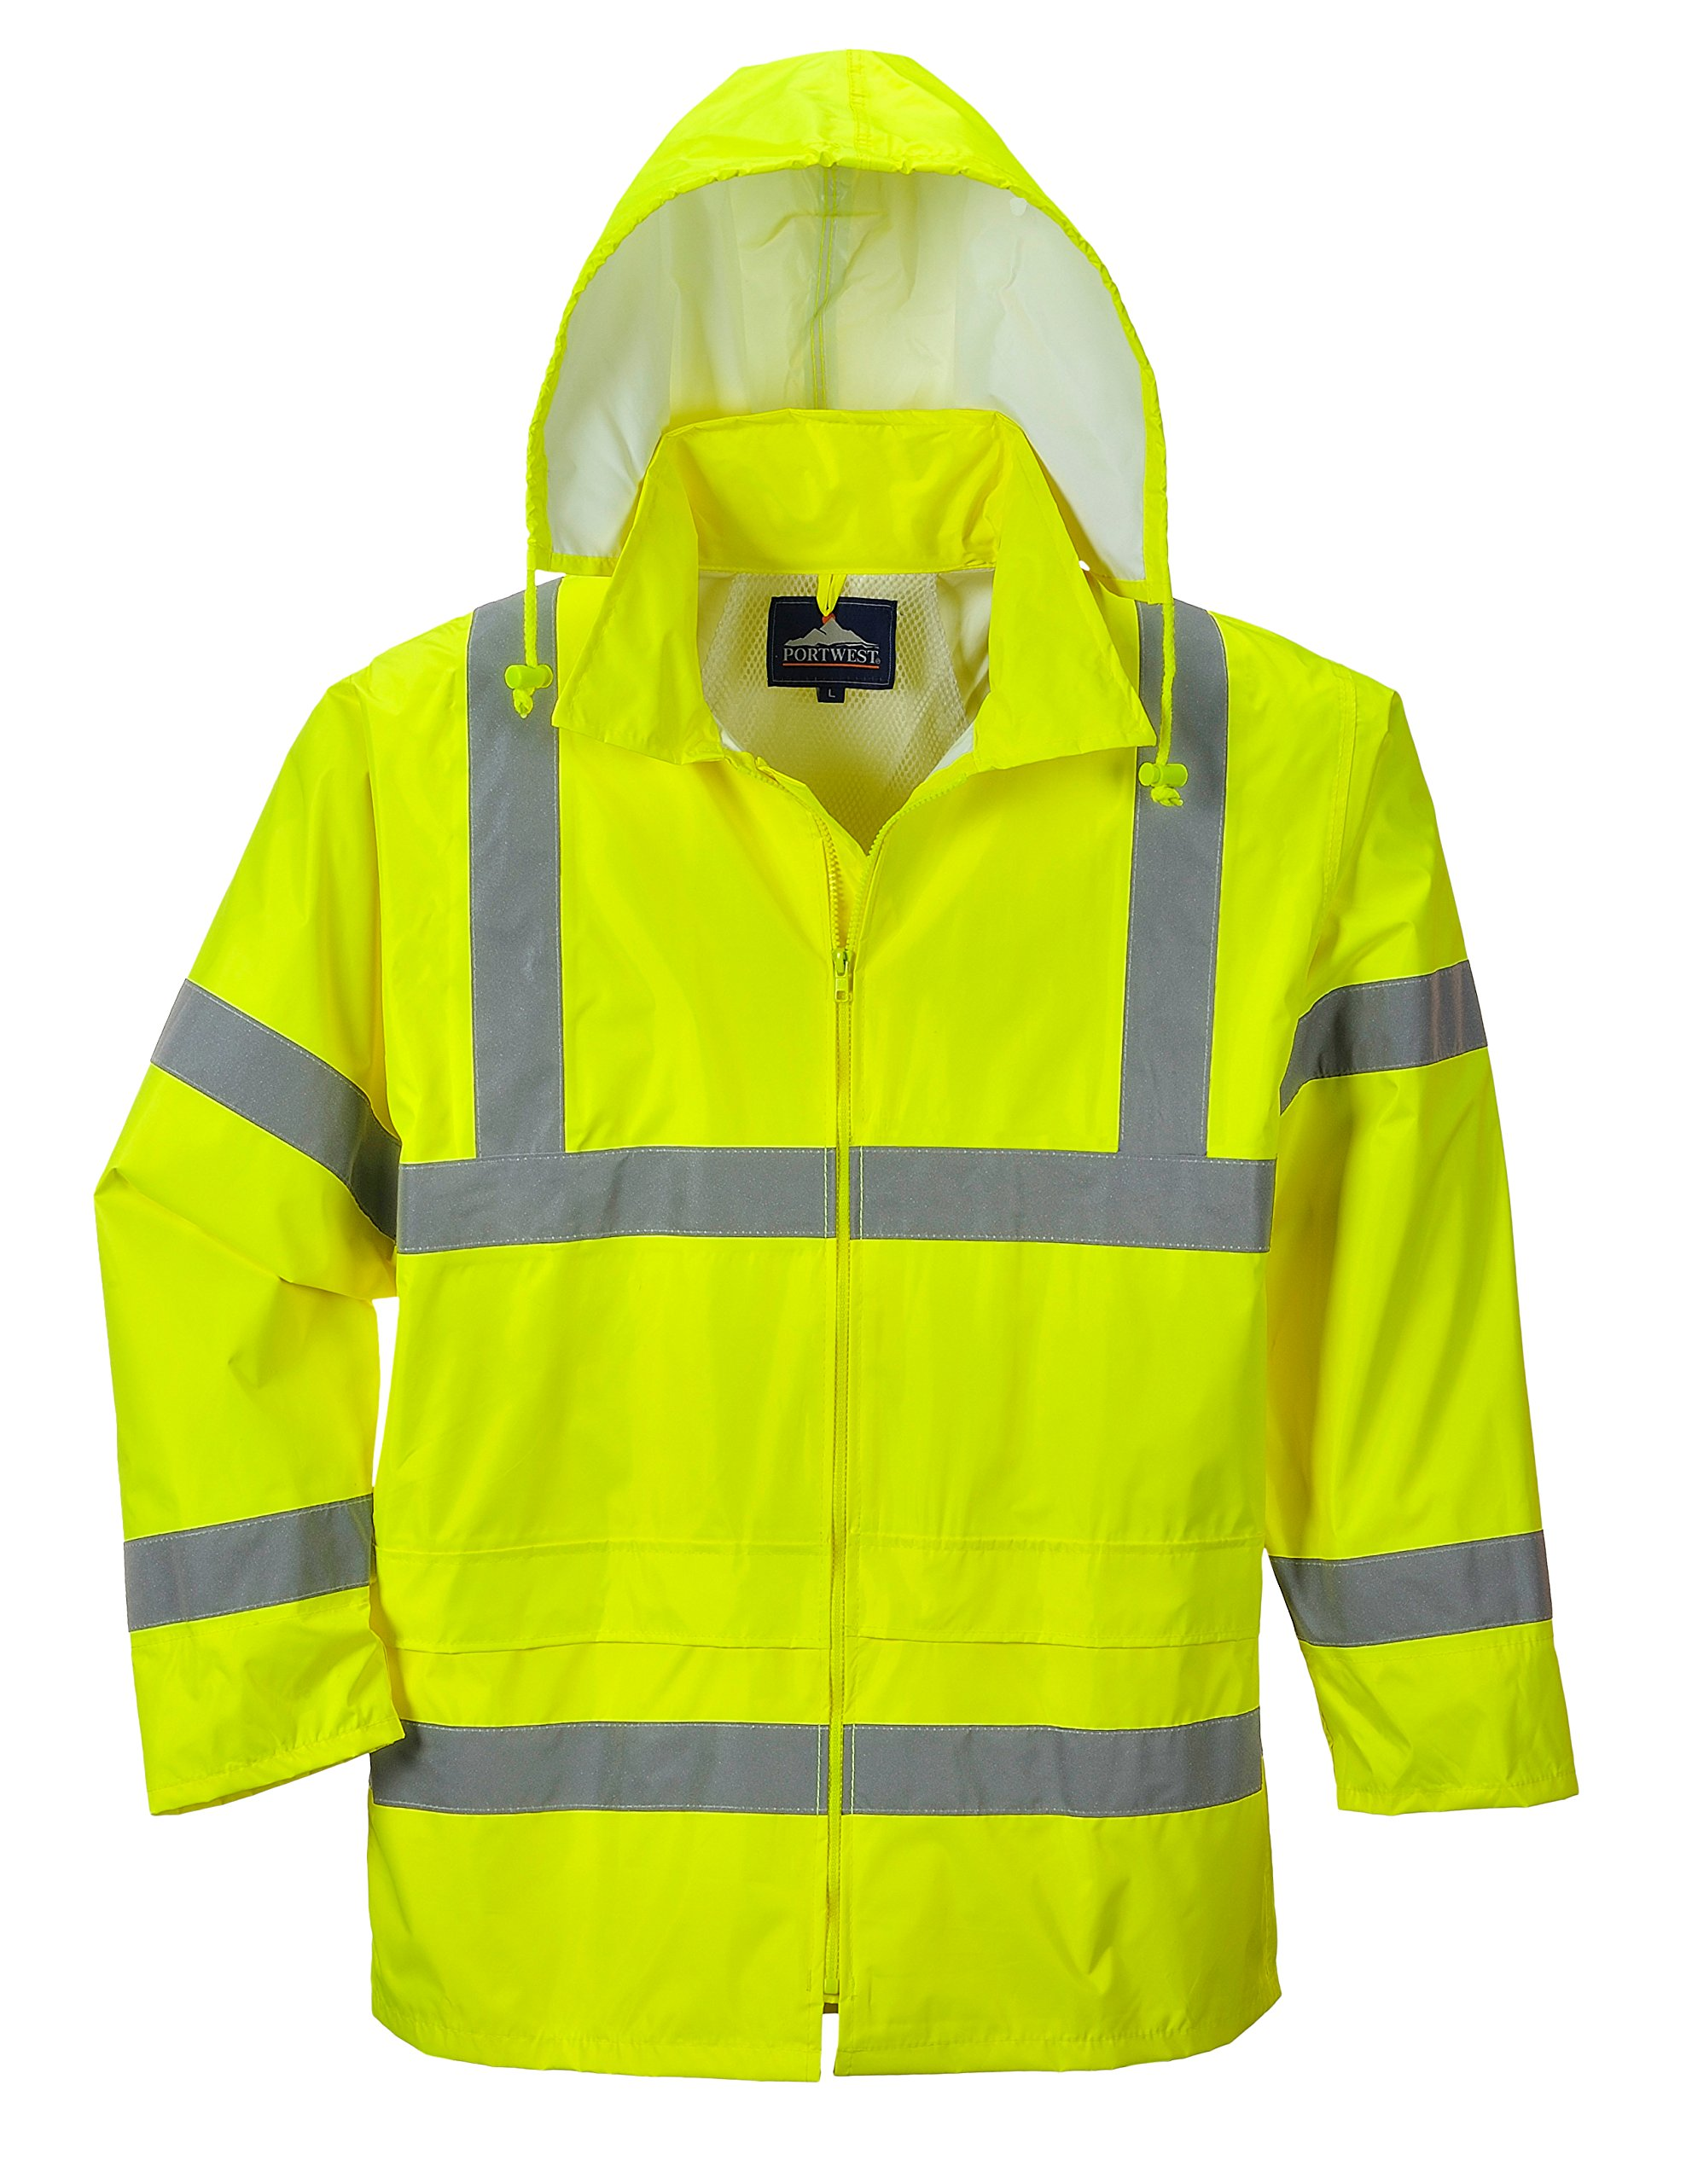 Portwest Waterproof Rain Jacket, Lightweight, Yellow, Large